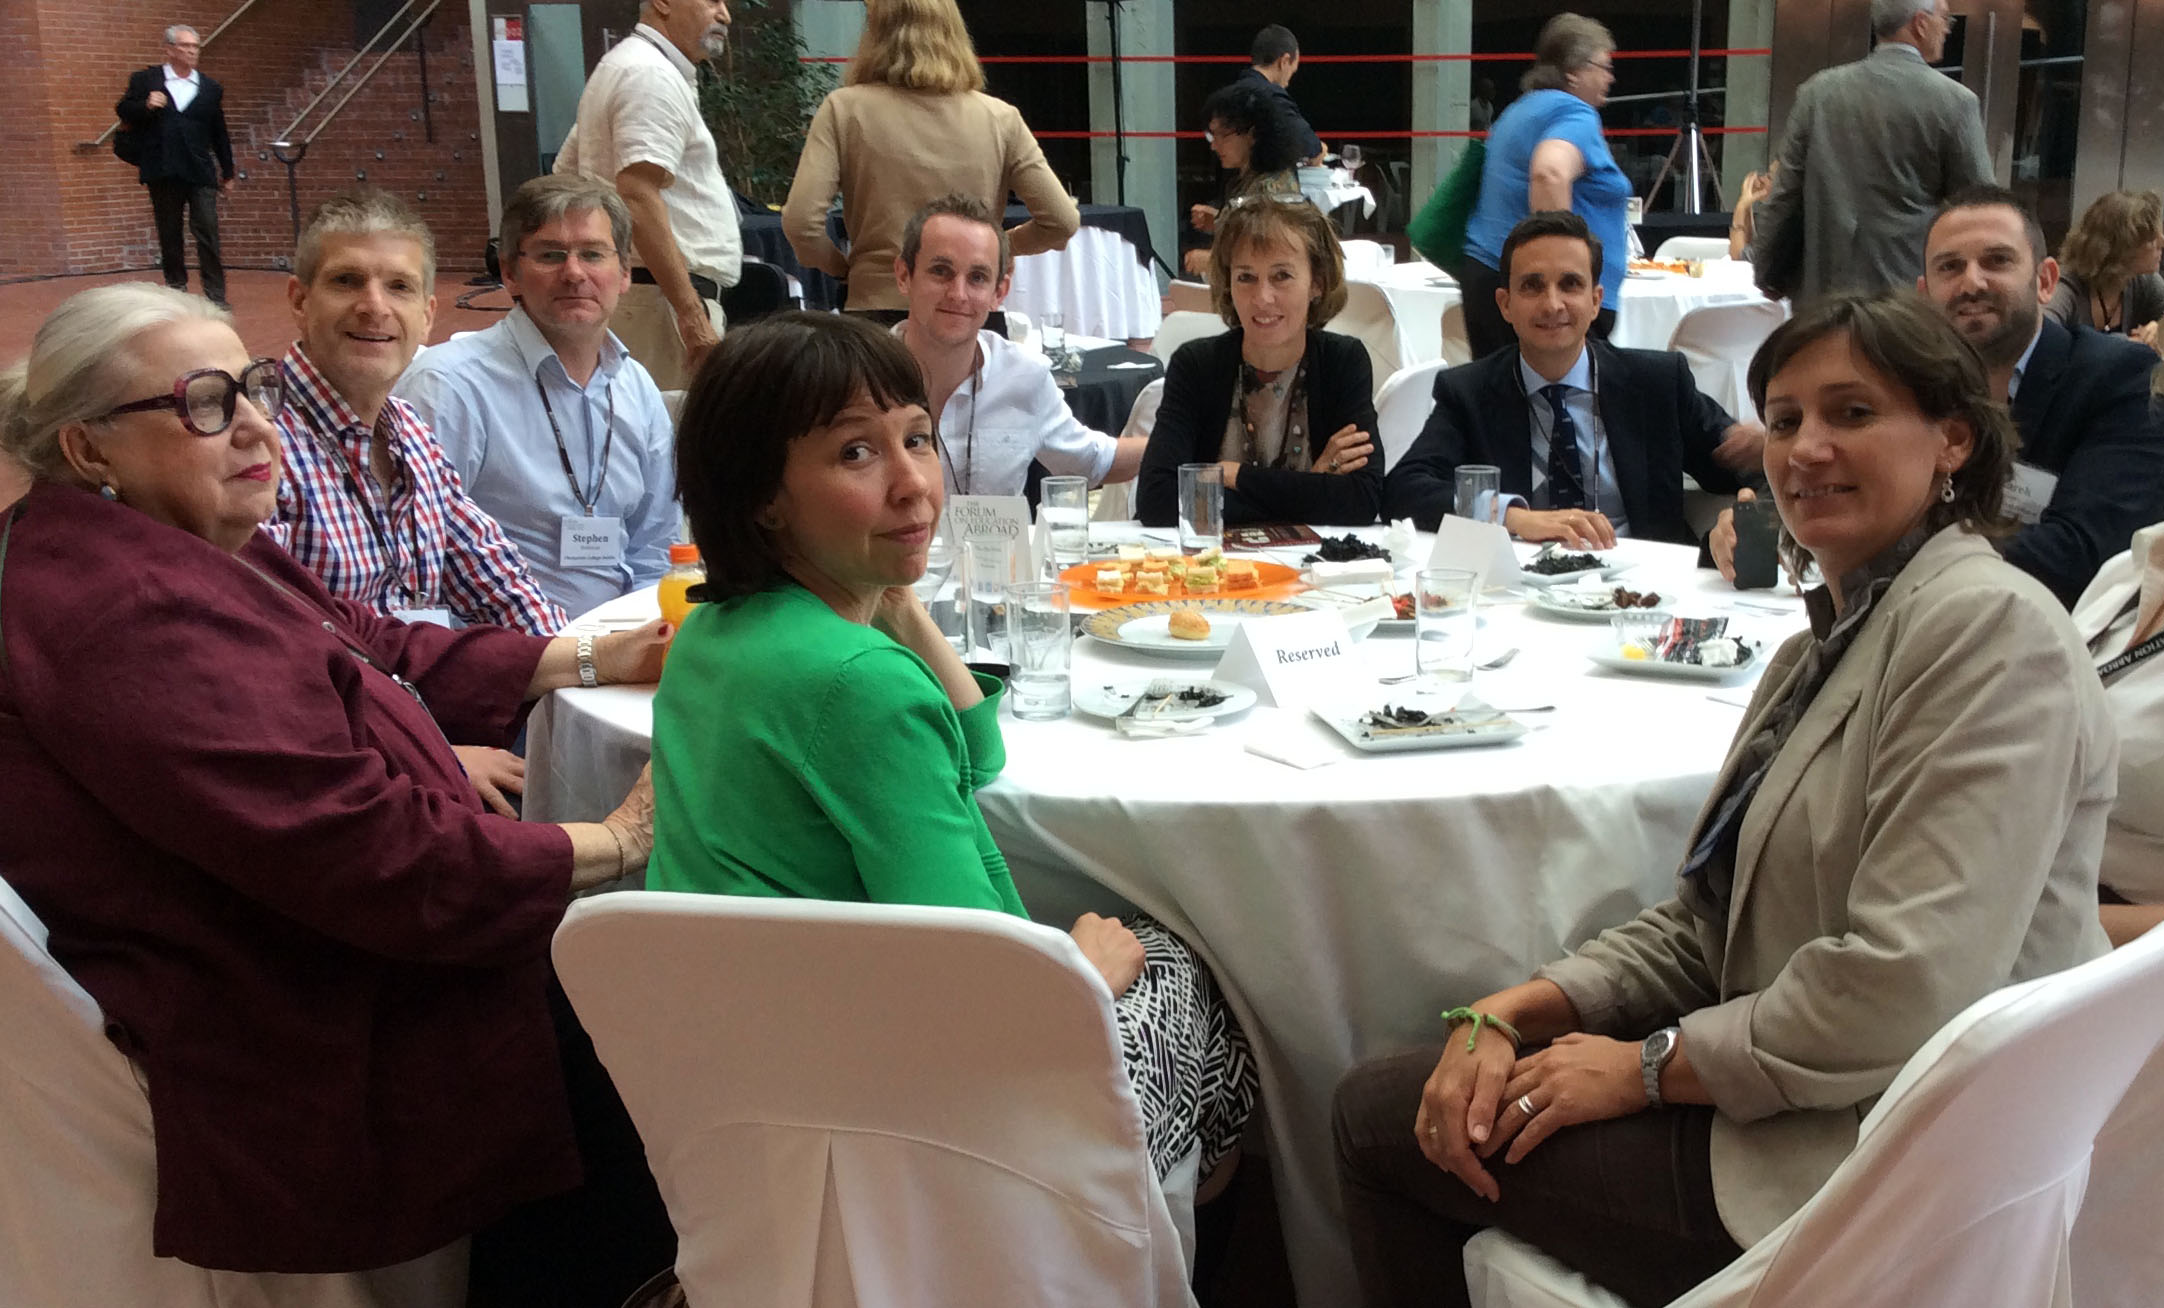 eu-associations-img-barcelona-lunch